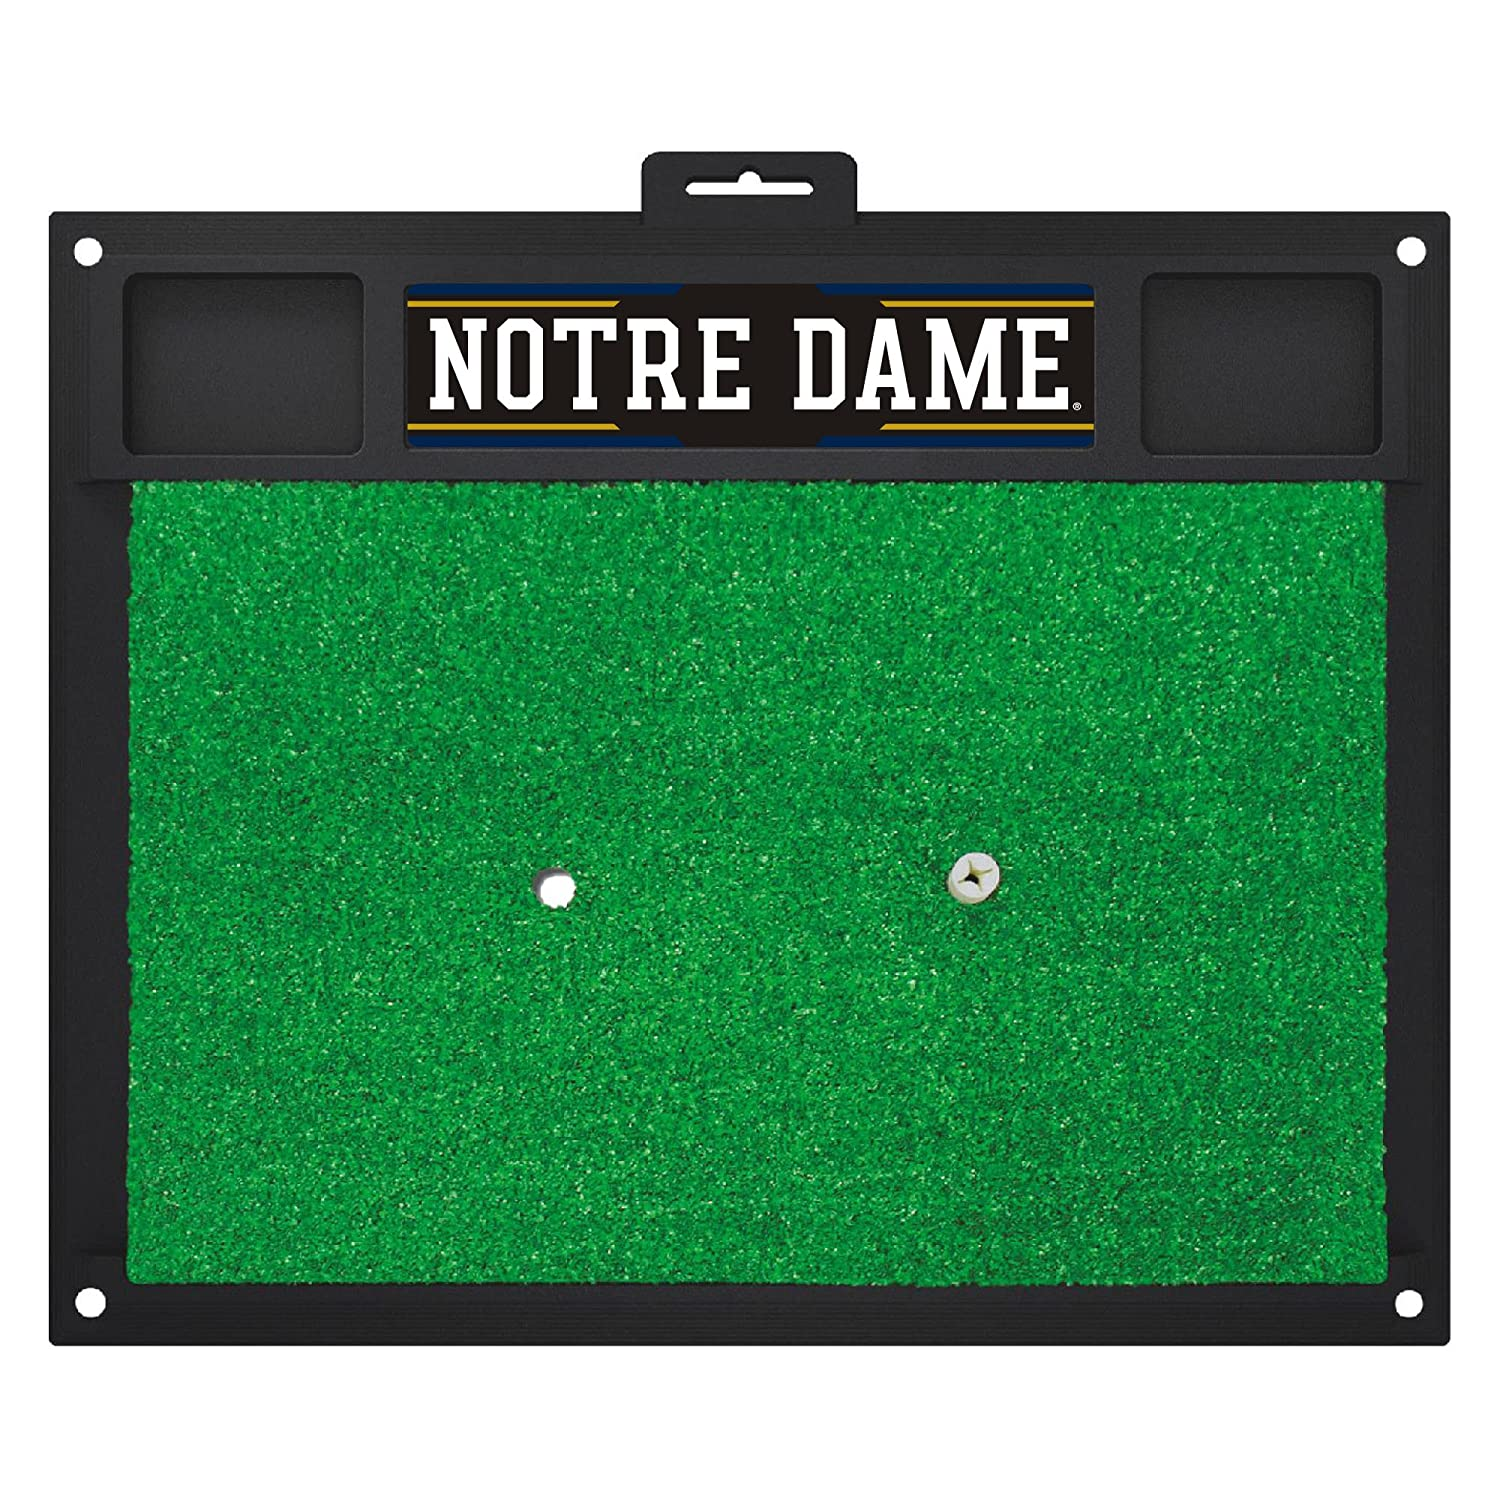 NCAA Notre Dame Fighting Irish Golf Hitting Matゴルフ練習アクセサリー   B07F1V2VYC